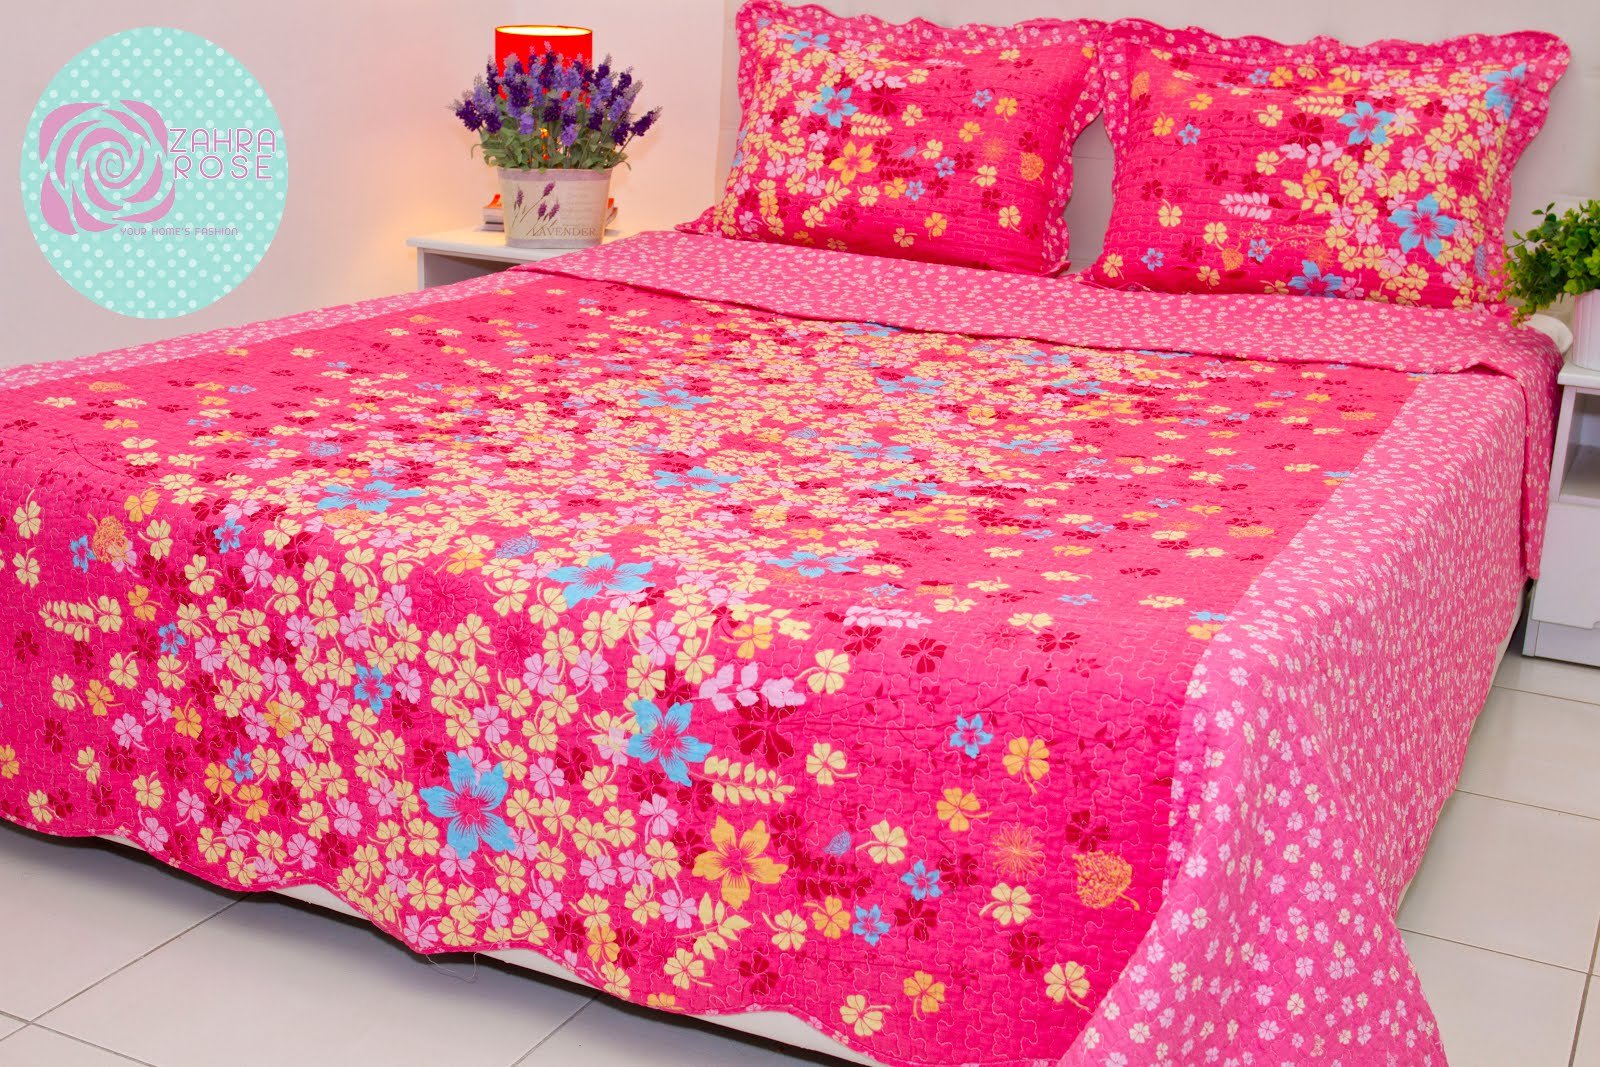 Bed sheets designs patchwork - Zr 014